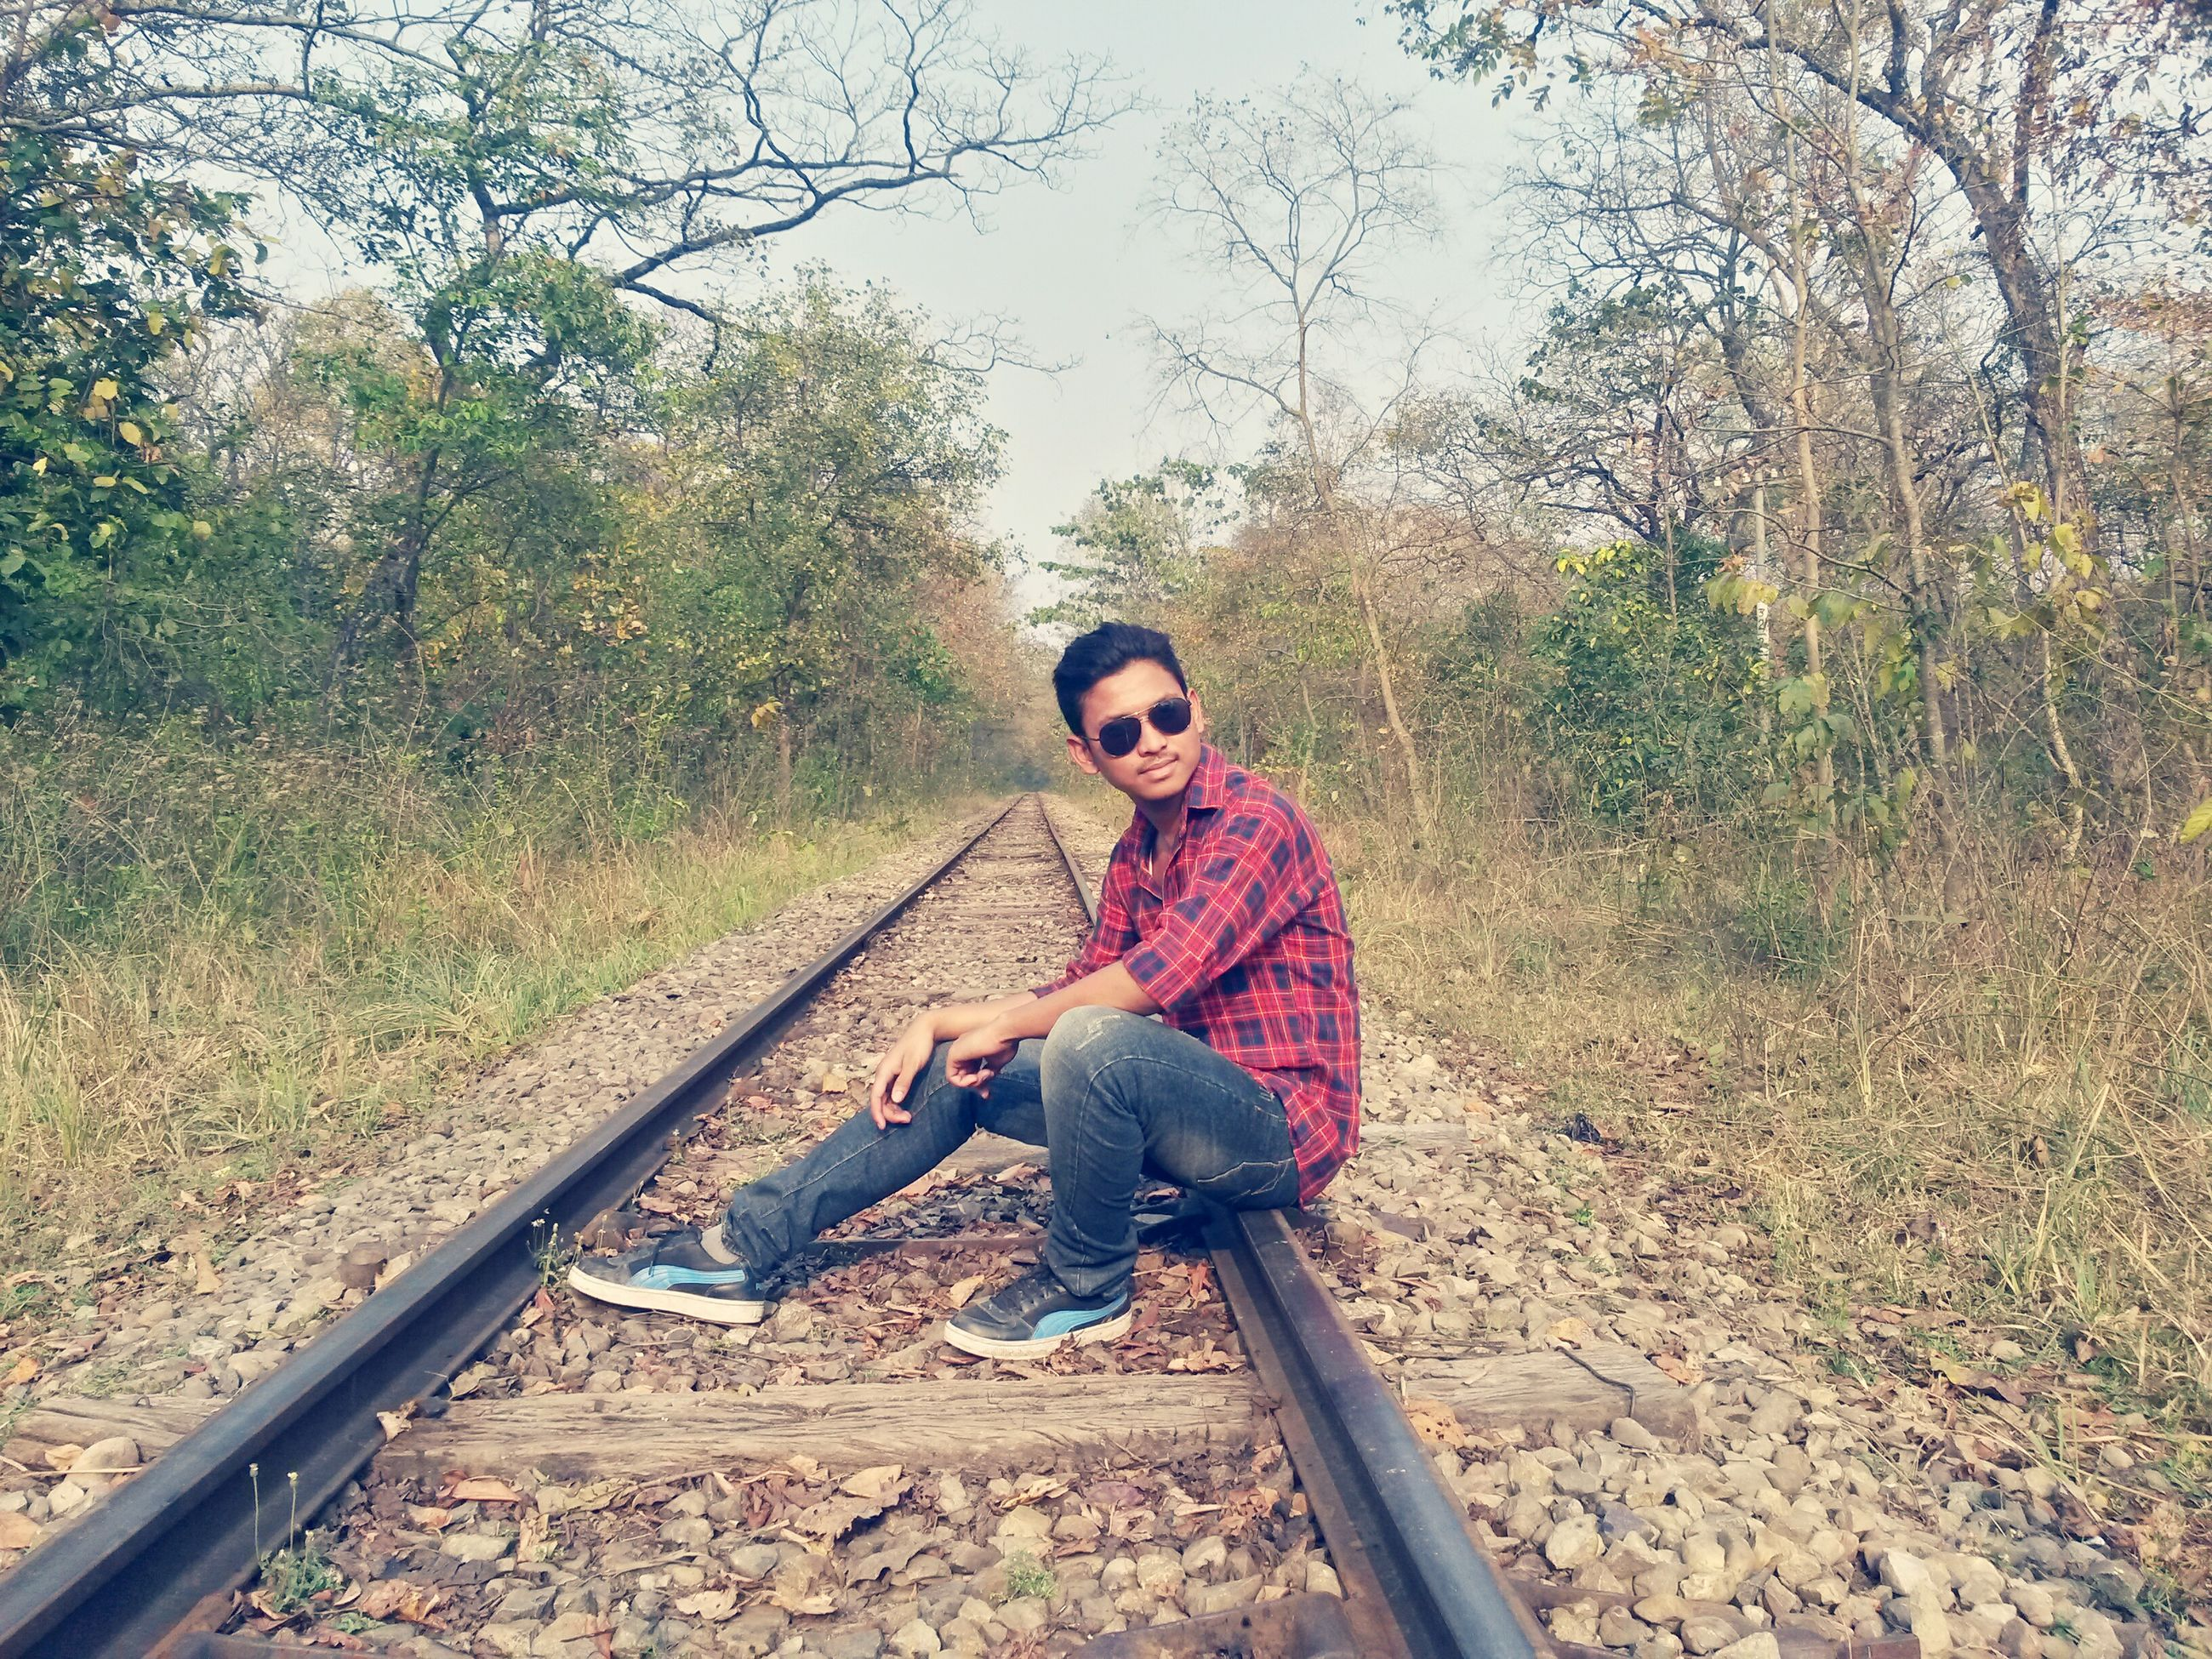 person, casual clothing, lifestyles, full length, leisure activity, railroad track, tree, transportation, young adult, portrait, looking at camera, front view, standing, smiling, rail transportation, day, holding, nature